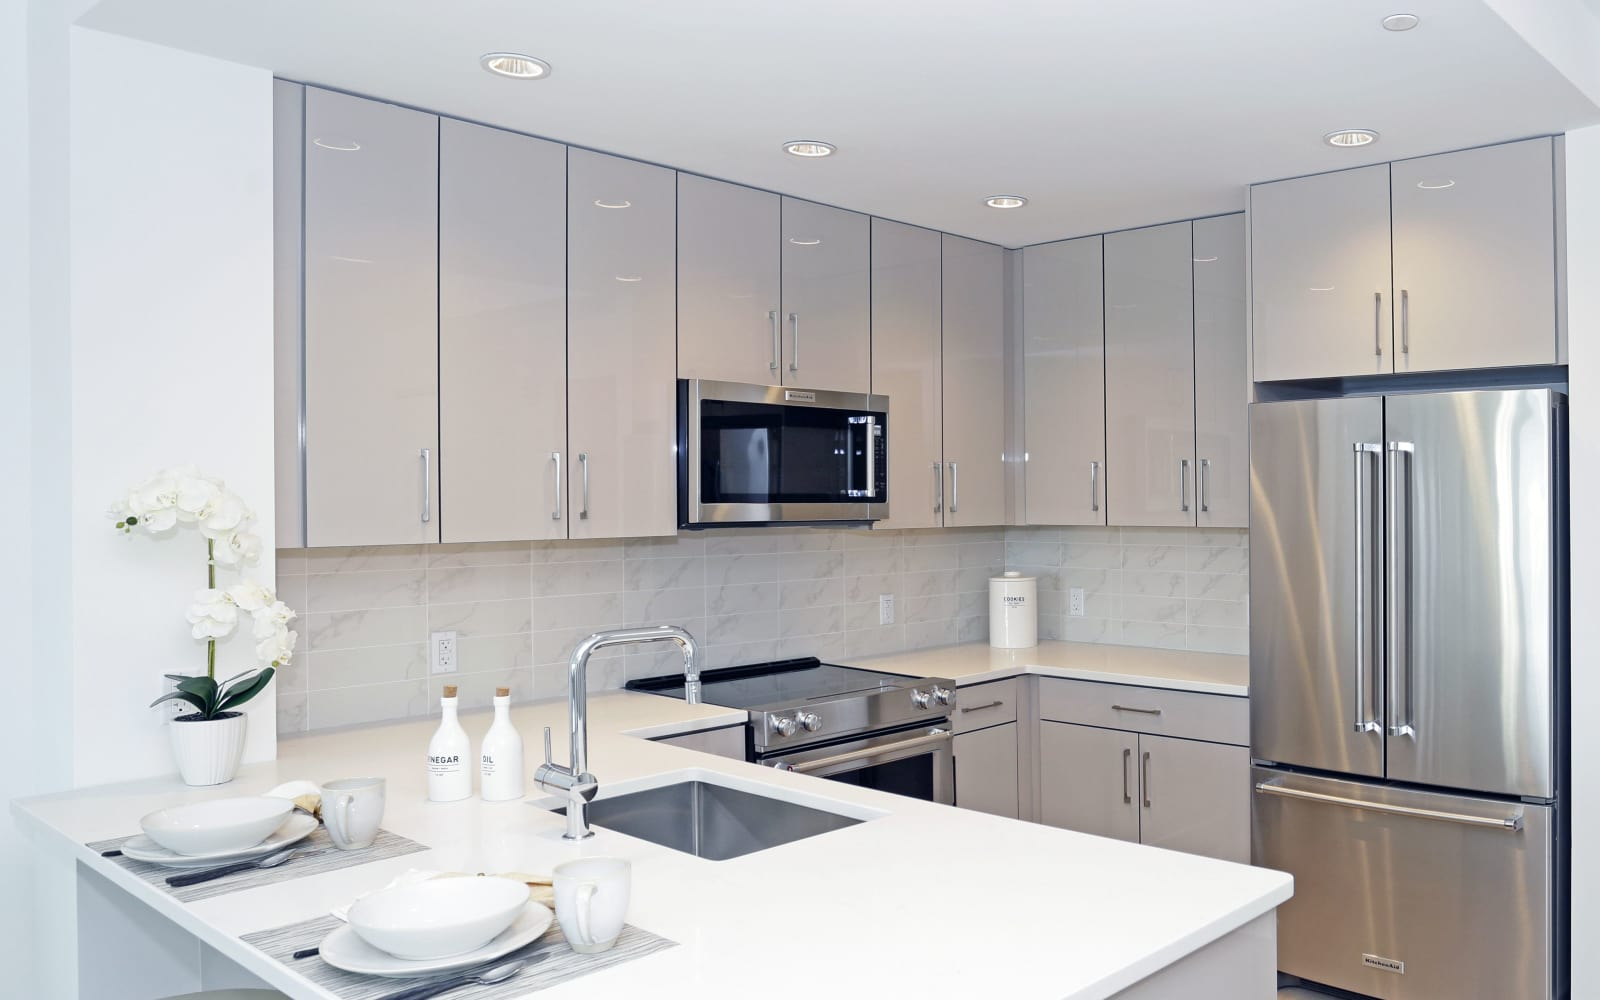 Apartment kitchen with white appliances  at The Centre